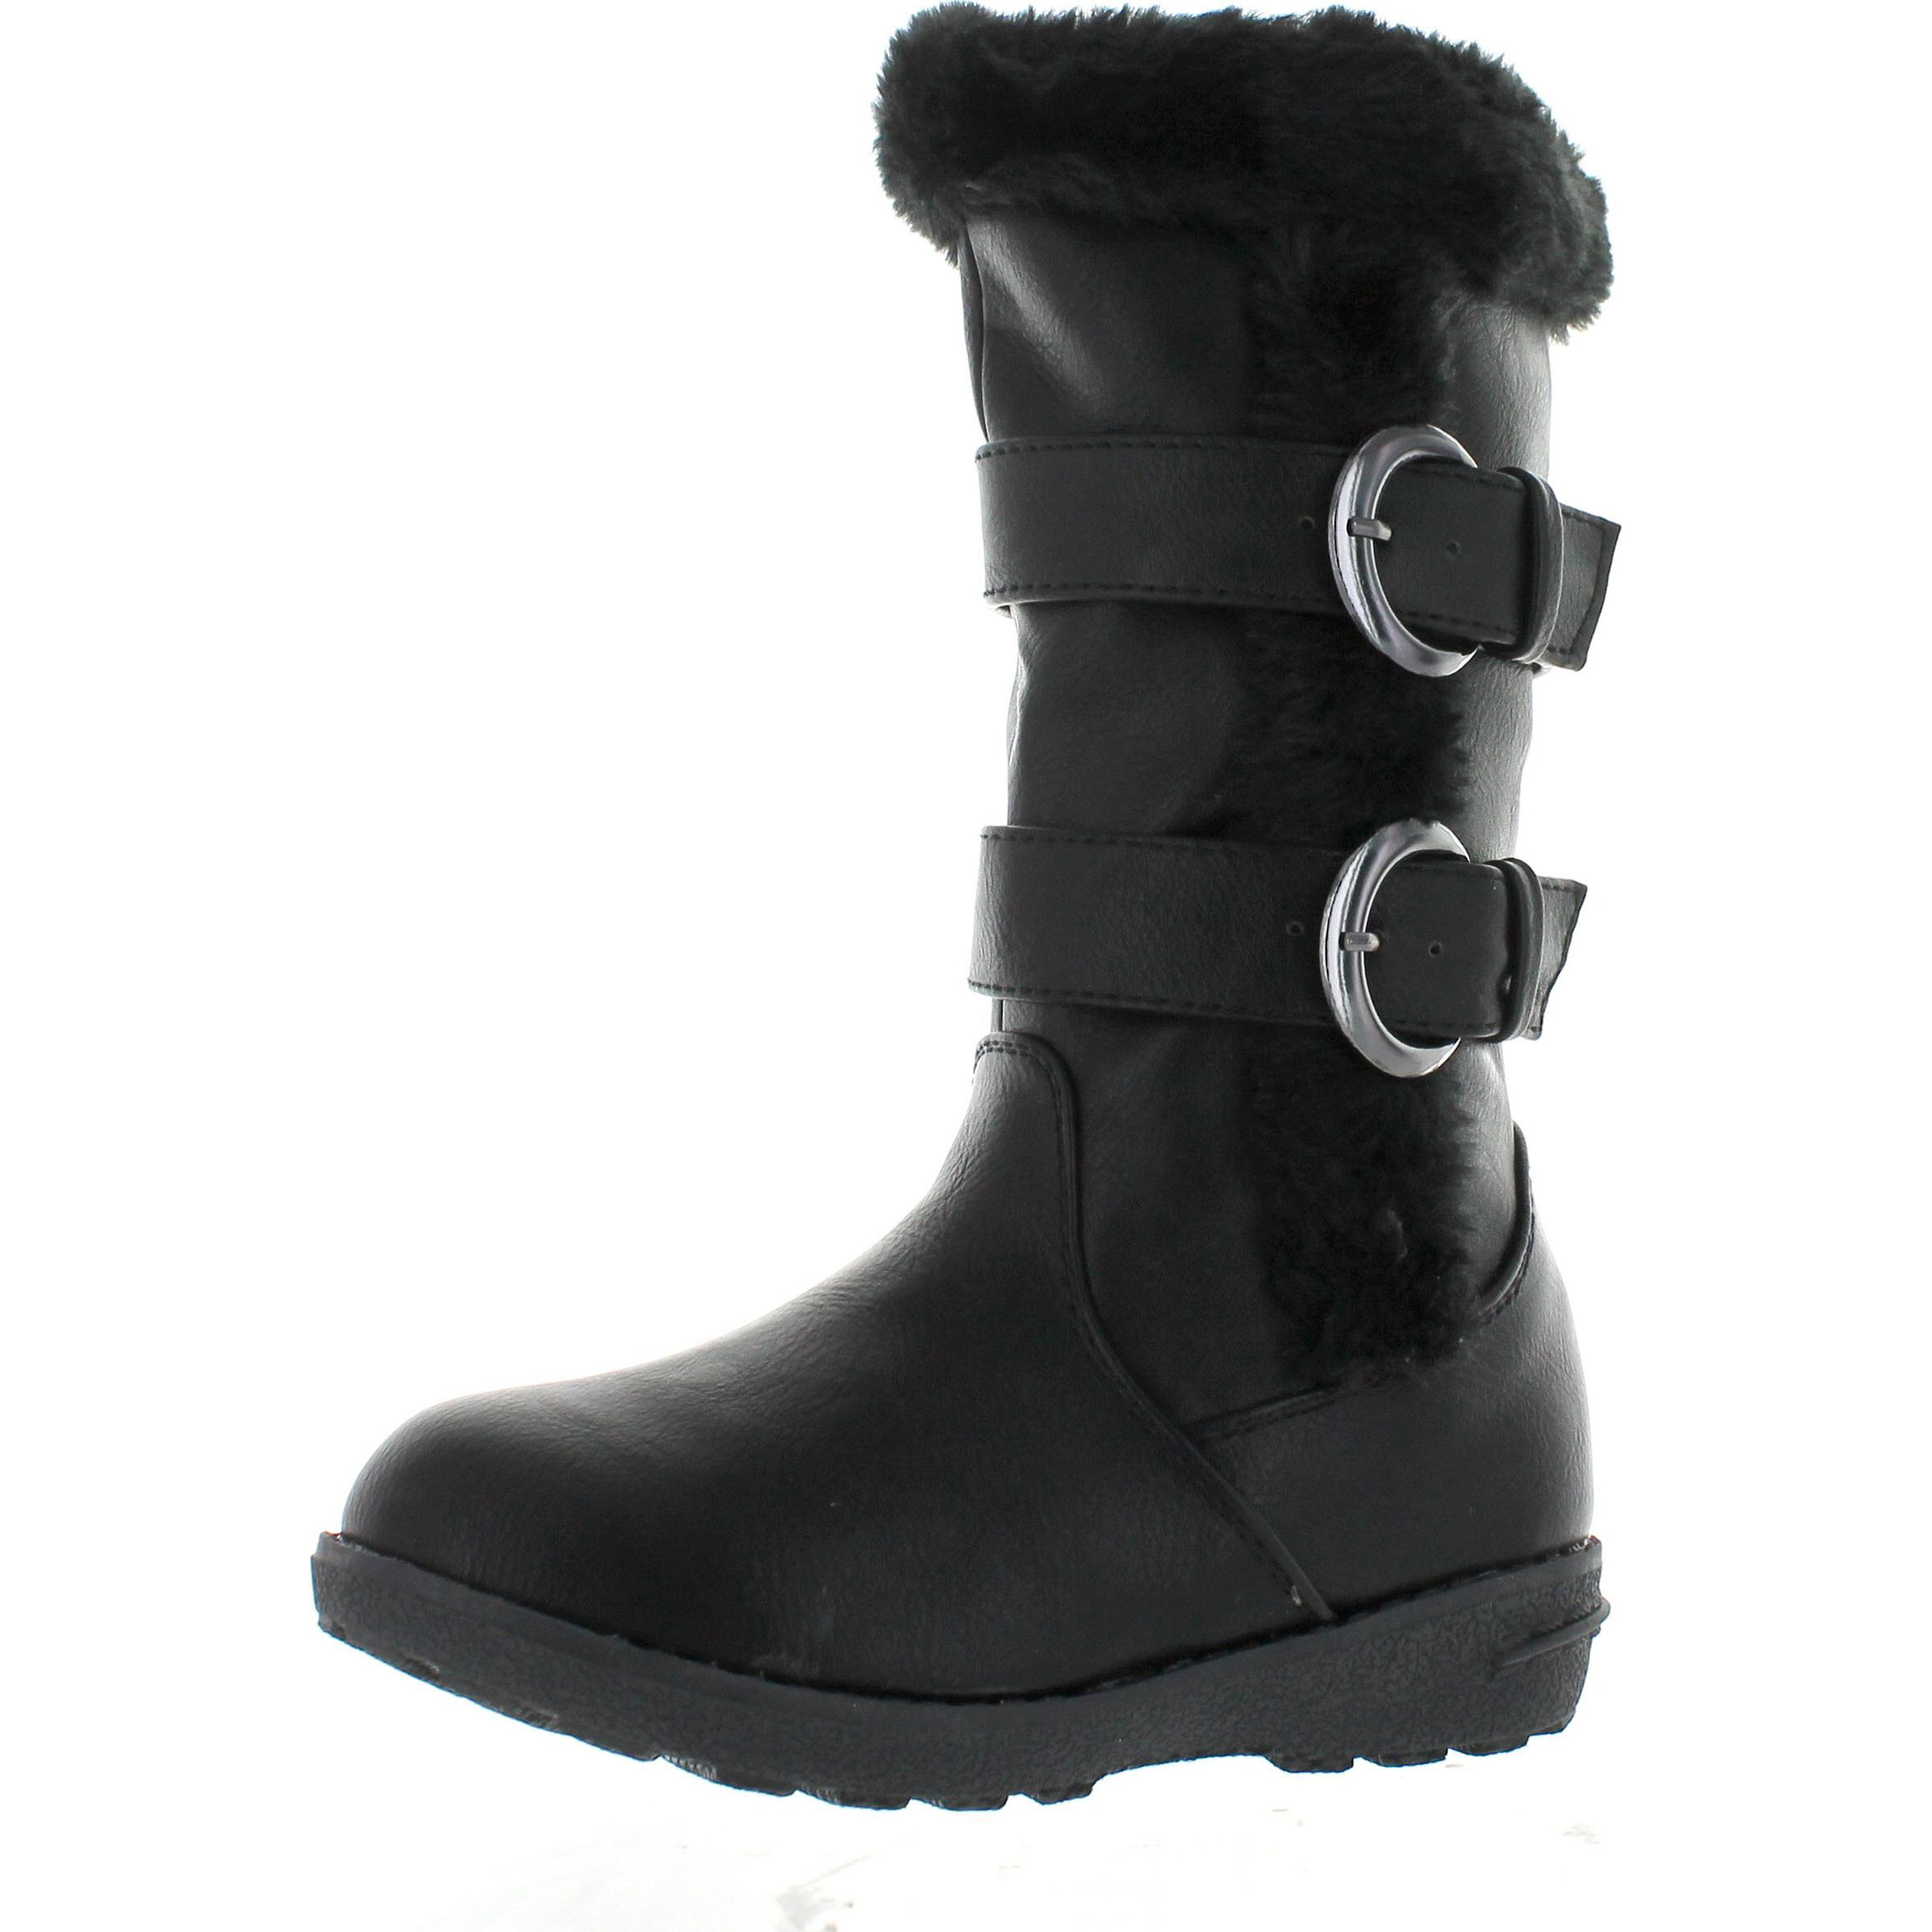 Click here to buy Lucky Top Youth-1K Children Girl's Low Heel Double Buckle Knee High Snow Boots by Static Footwear.